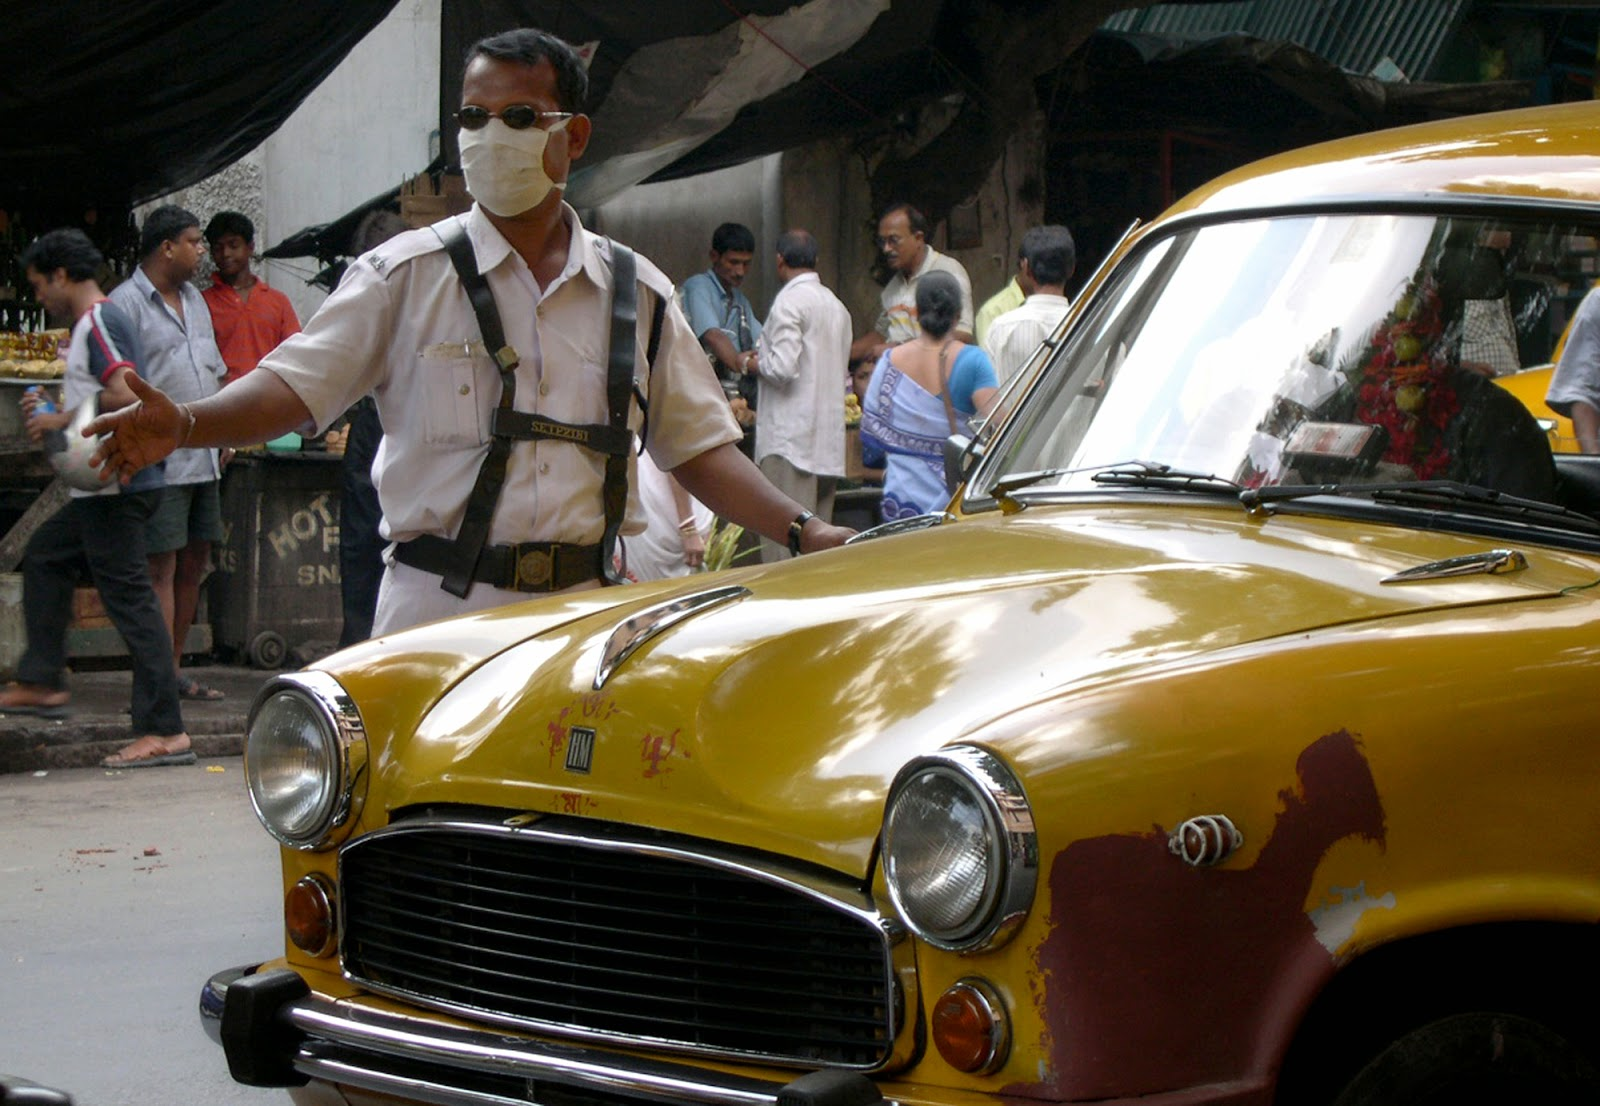 Traffic pollution reduces longevity of policemen in Kolkata and Delhi